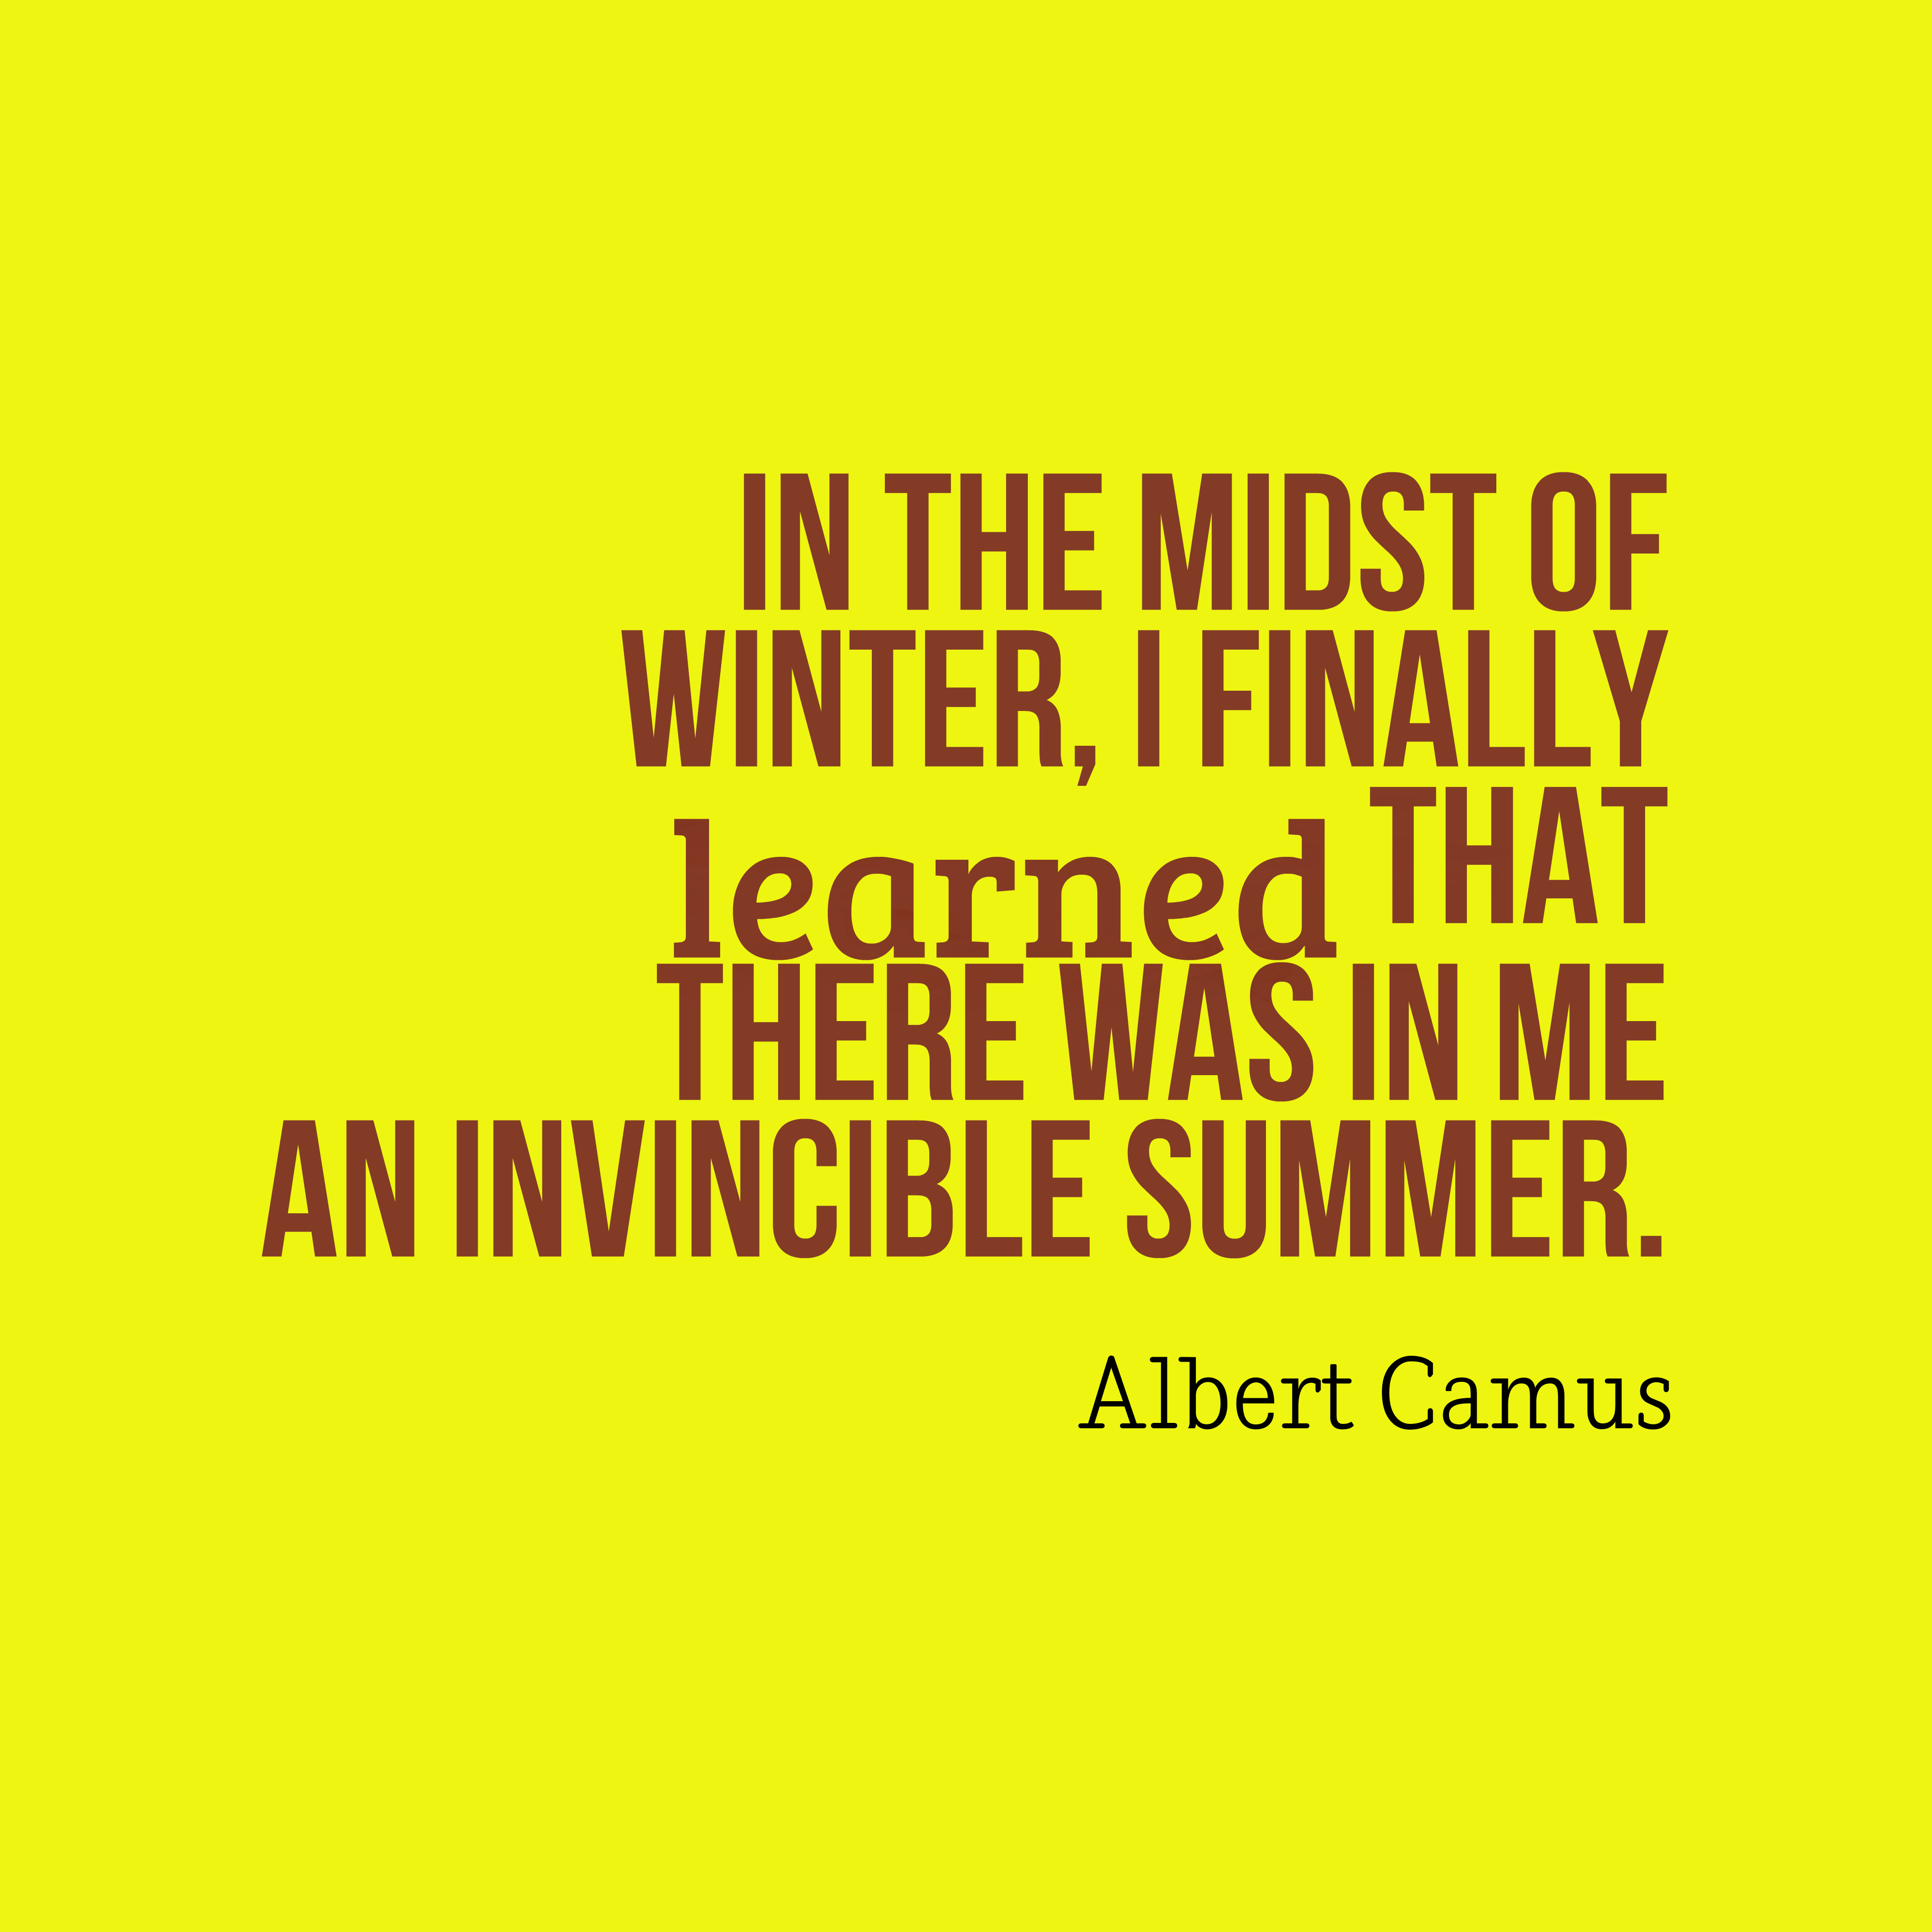 Quotes image of In the midst of winter, I finally learned that there was in me an invincible summer.